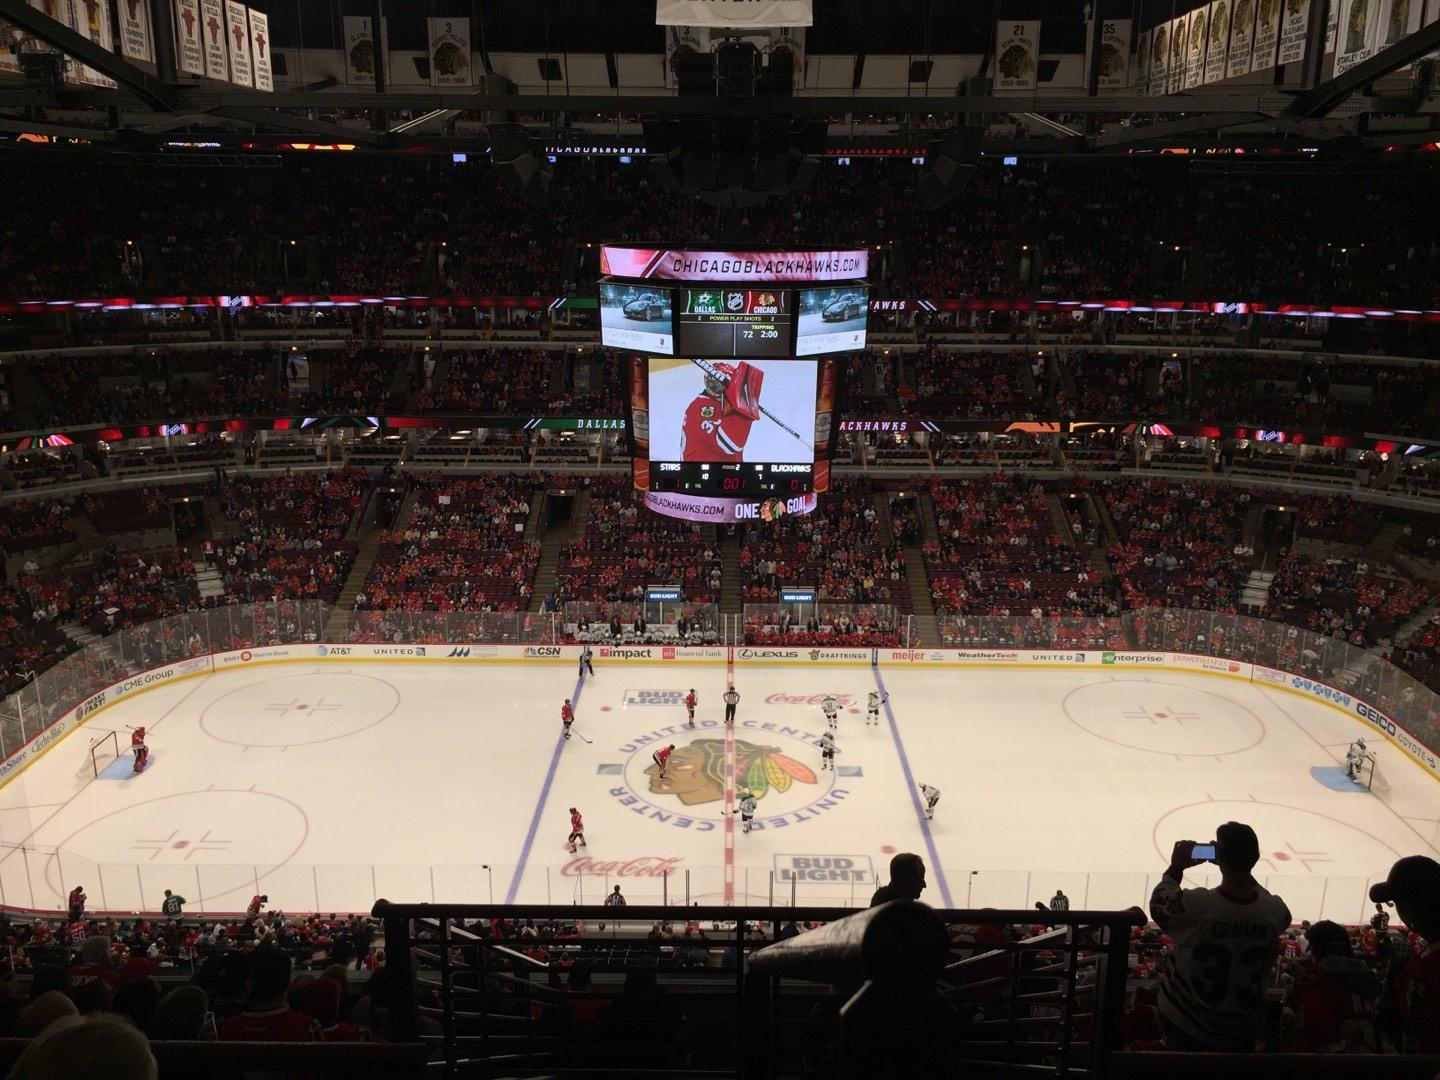 United Center Section 318 Row 11 Seat 1